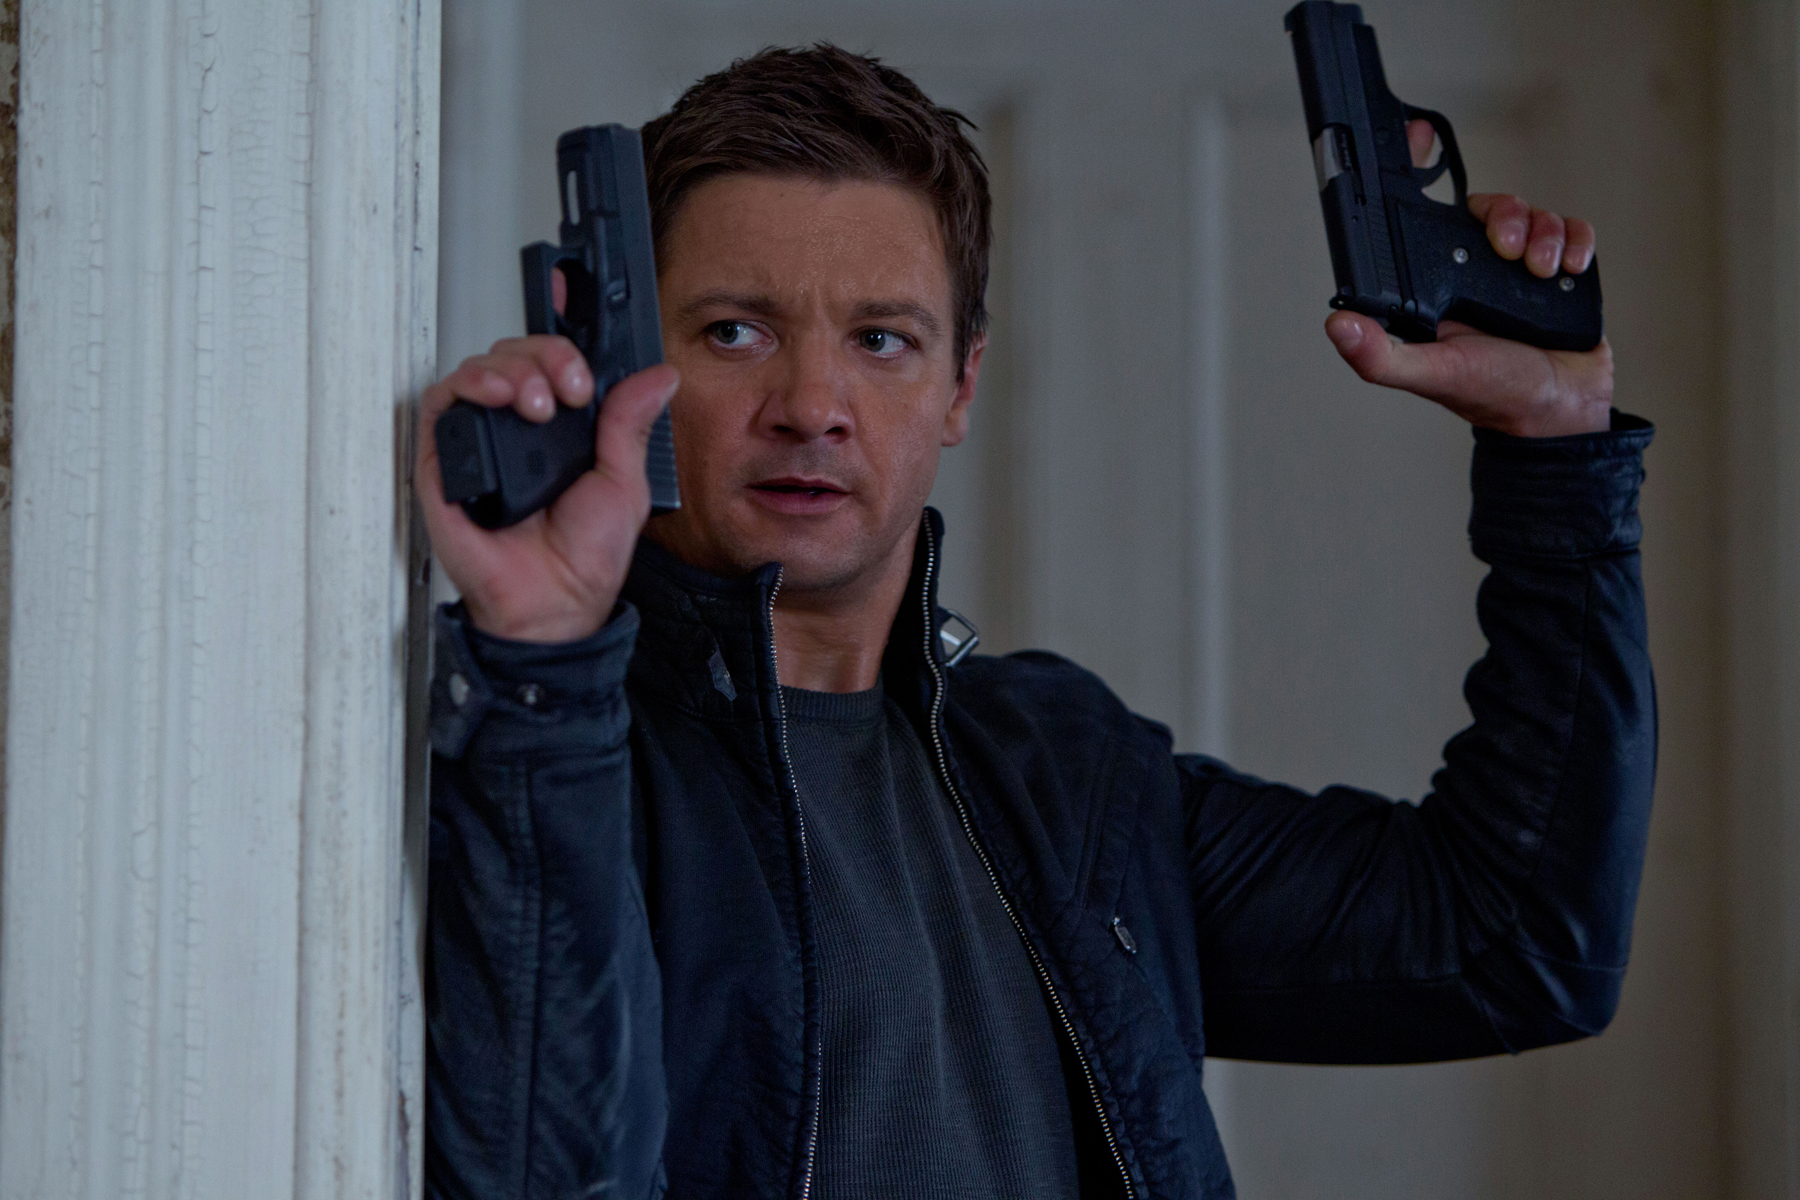 Next 'Bourne' Sequel to Hit Theaters in 2015